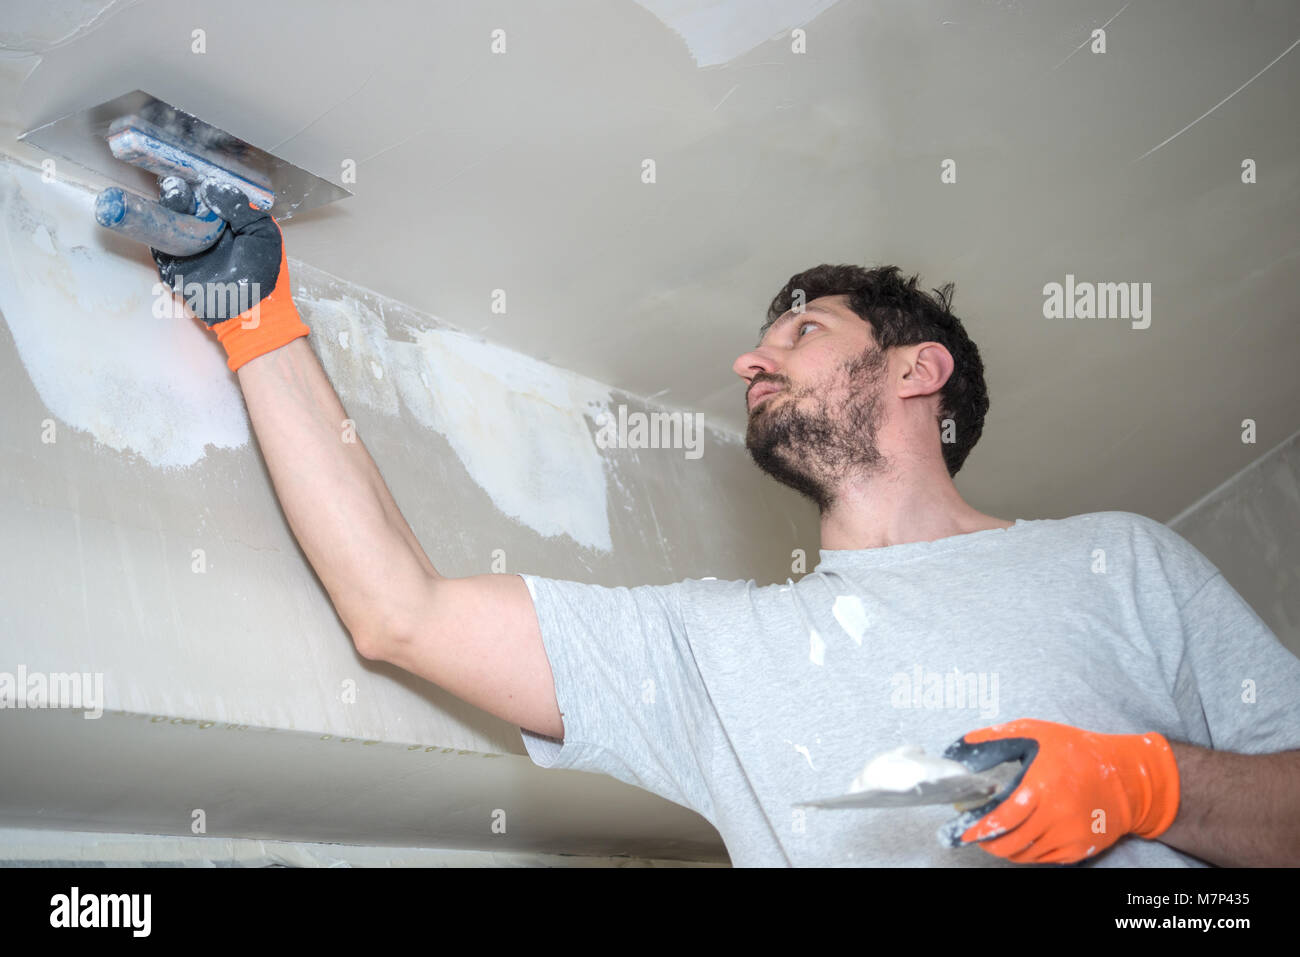 Worker Plastering Ceiling Stock Photo